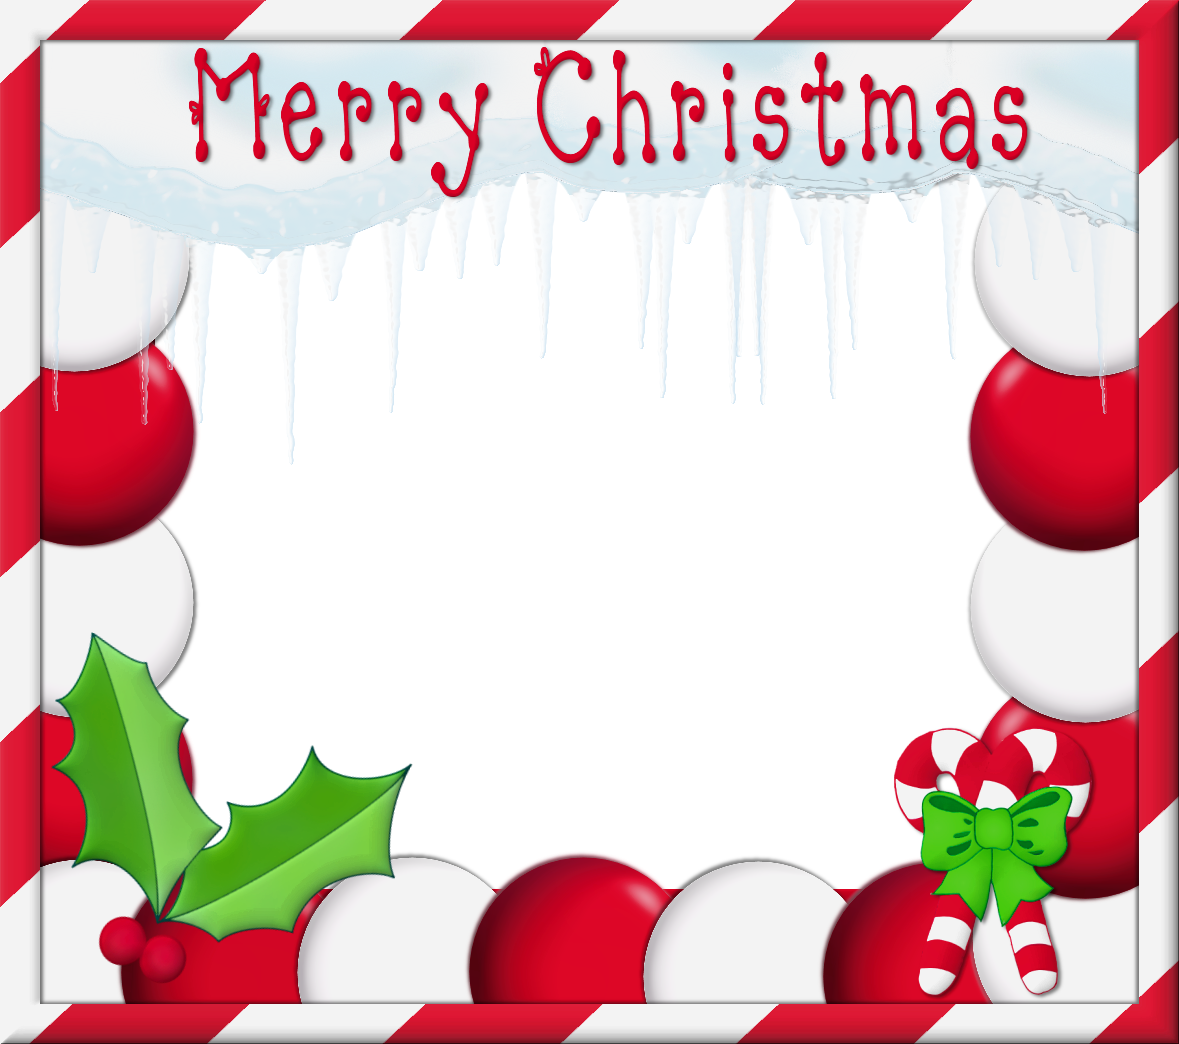 merry chritmas photo frame christmas pictures frame free christmas photos christmas freames photoshop - Free Christmas Photo Frames